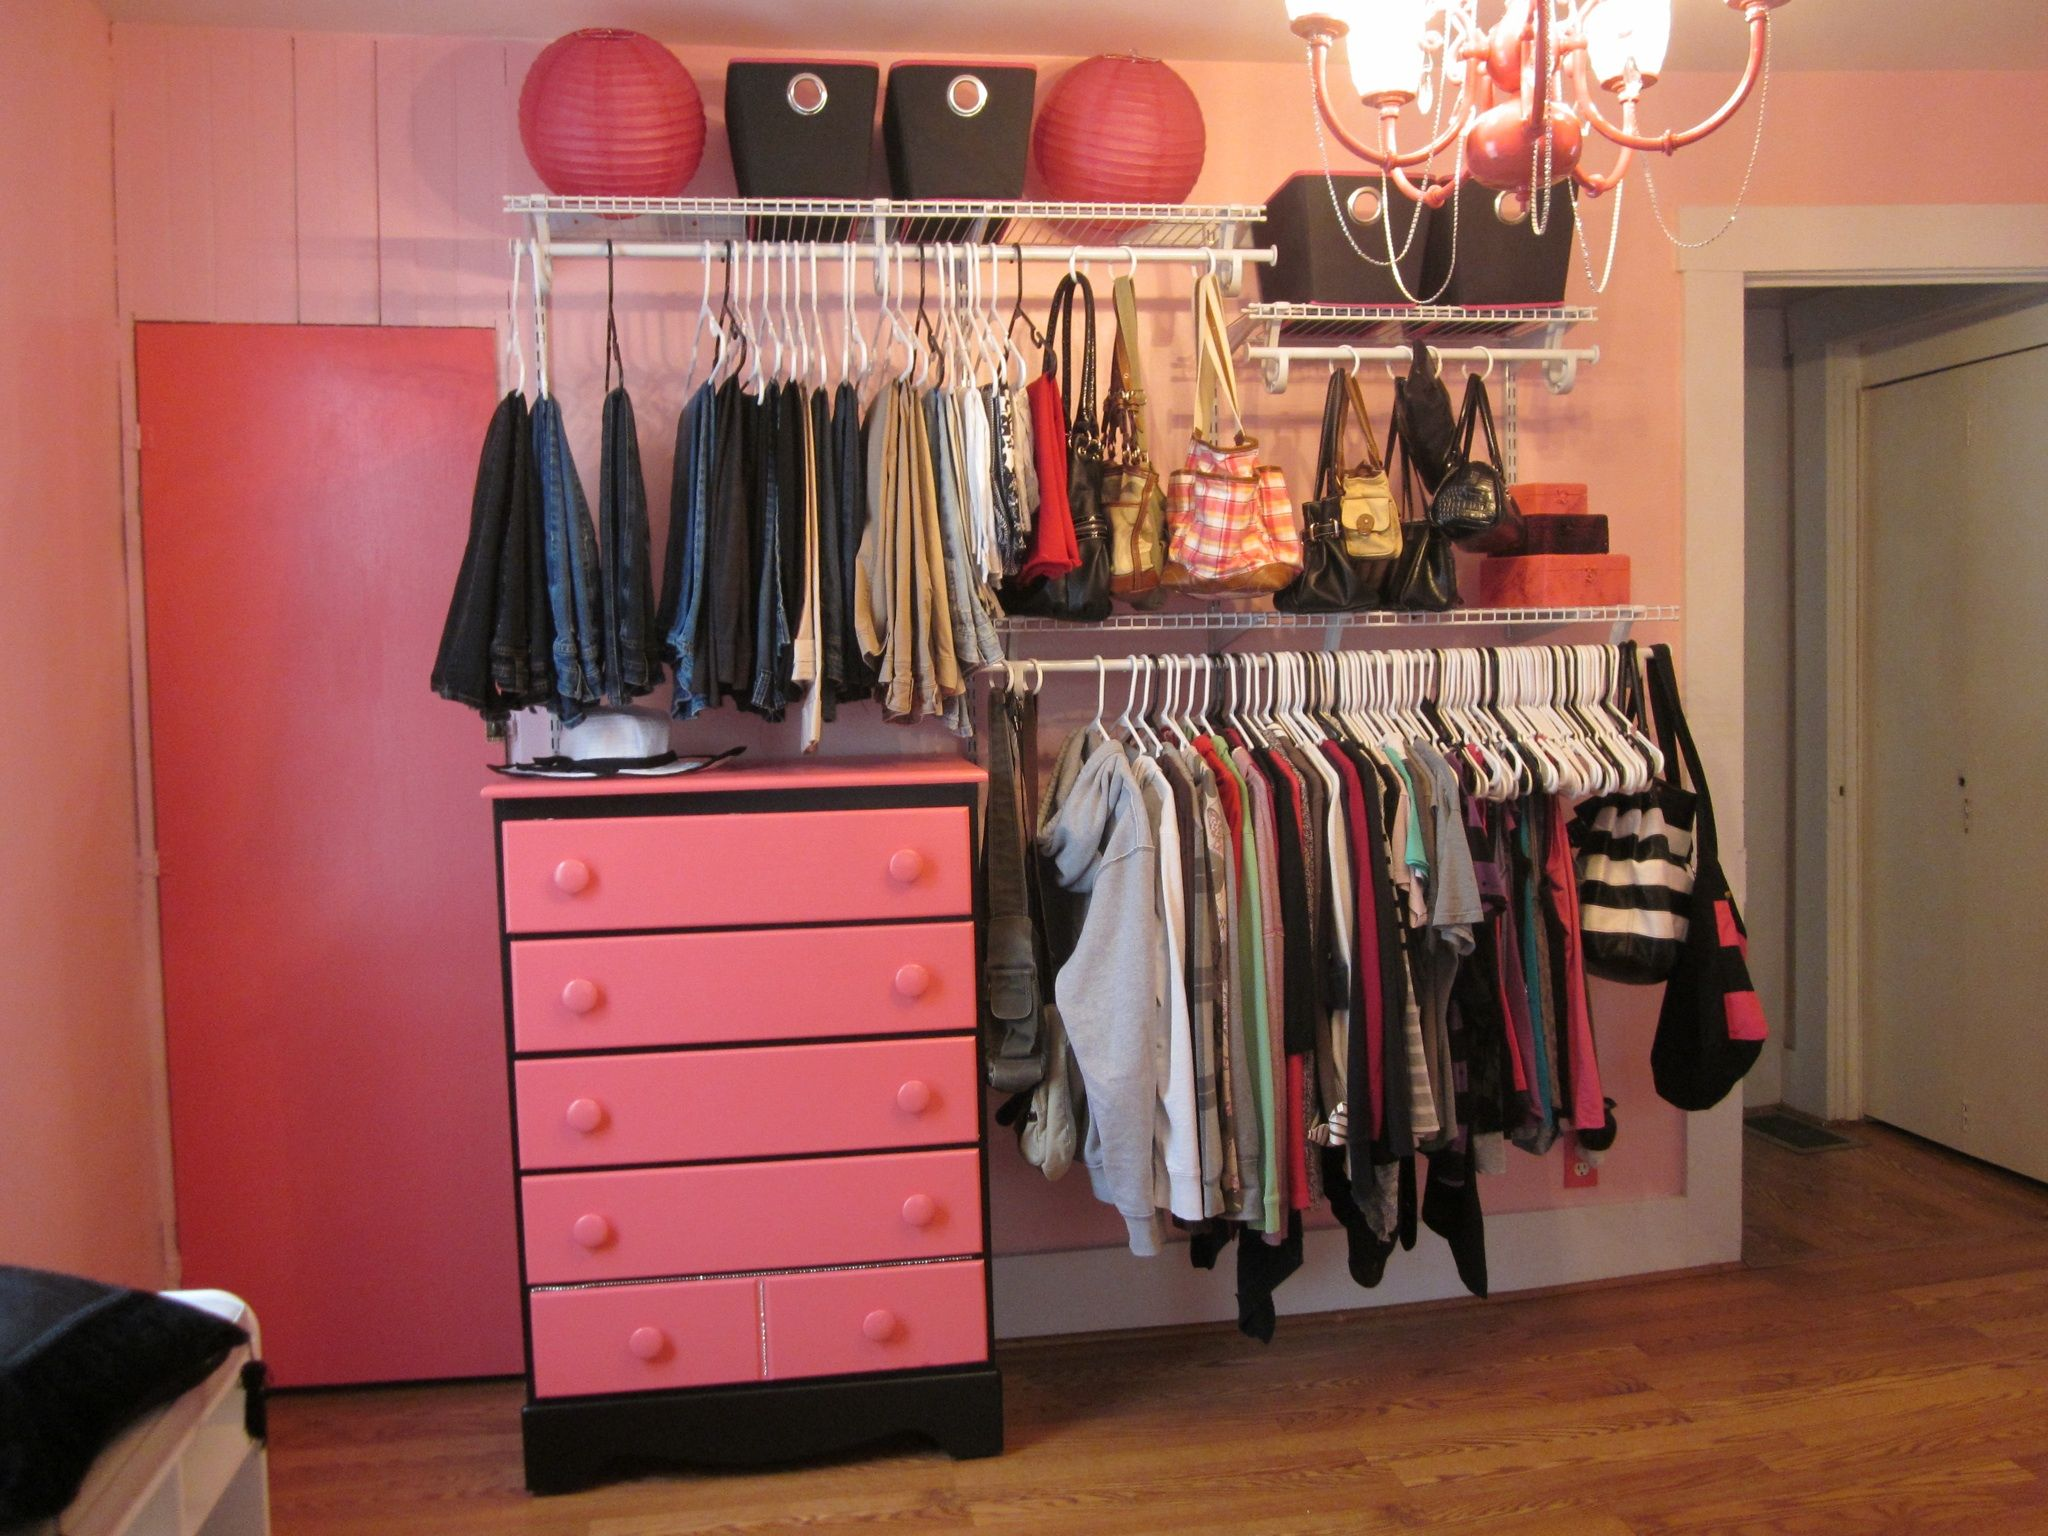 the clothes rack is a simple diy kit from home depot closet maid 90 the dresser i already. Black Bedroom Furniture Sets. Home Design Ideas